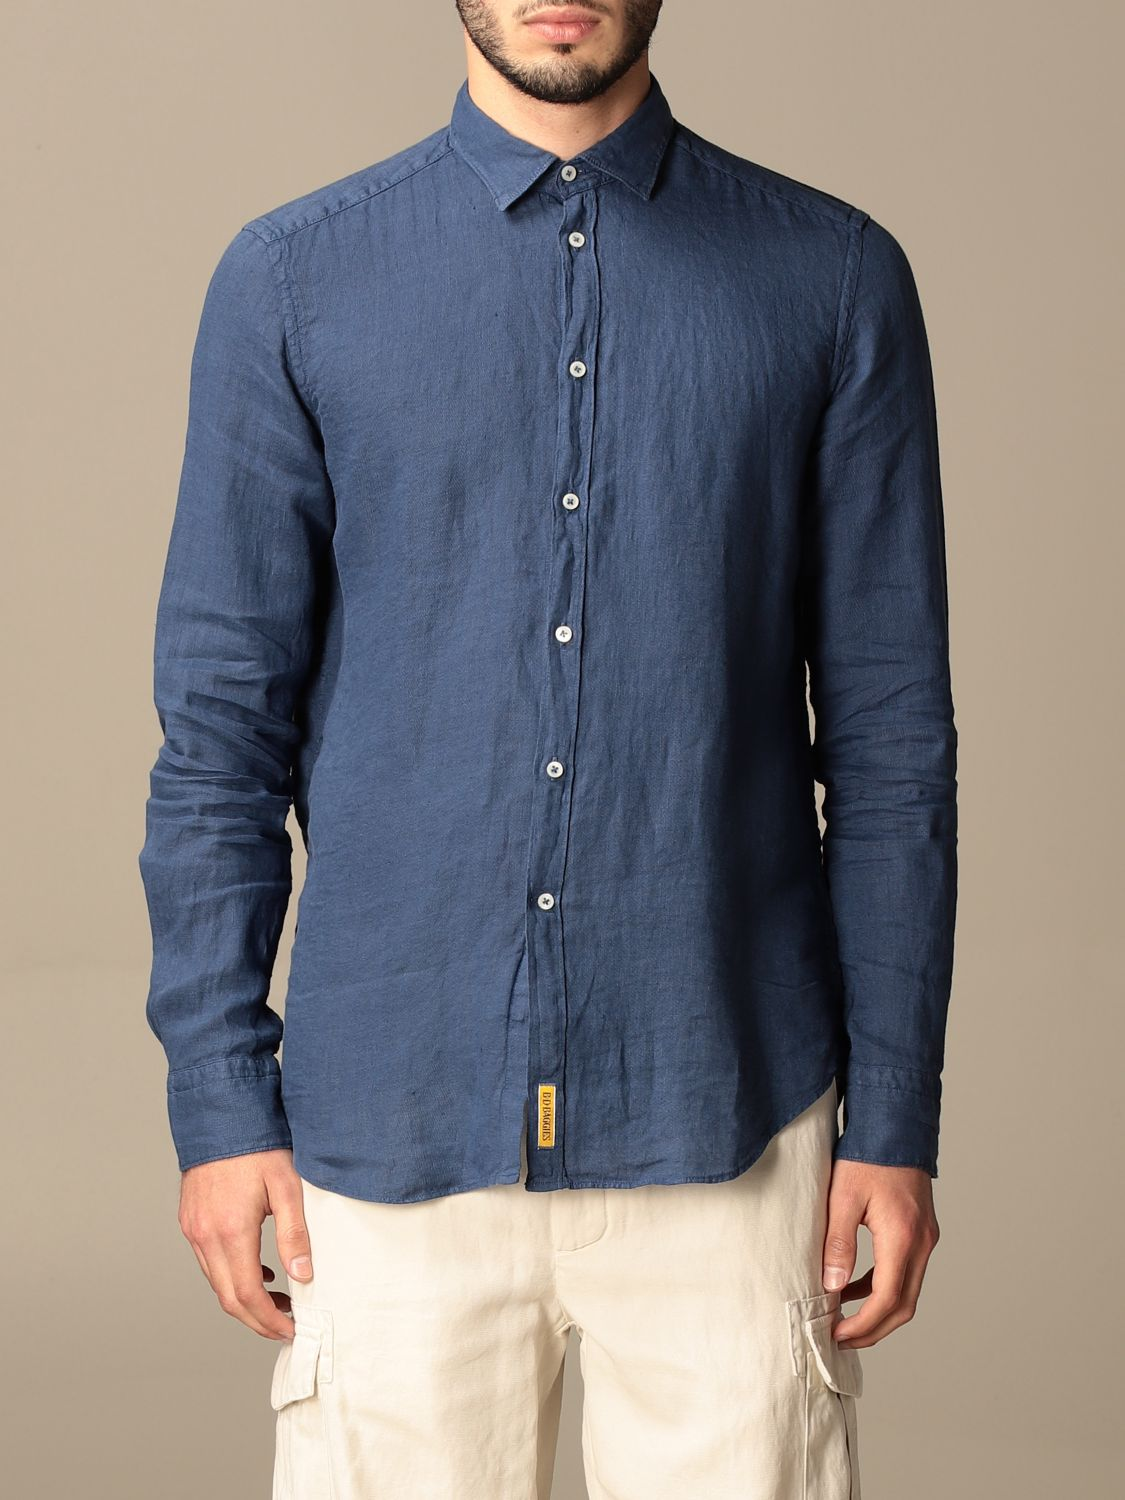 Chemise An American Tradition: Chemise homme Bd Baggies bleu marine 1